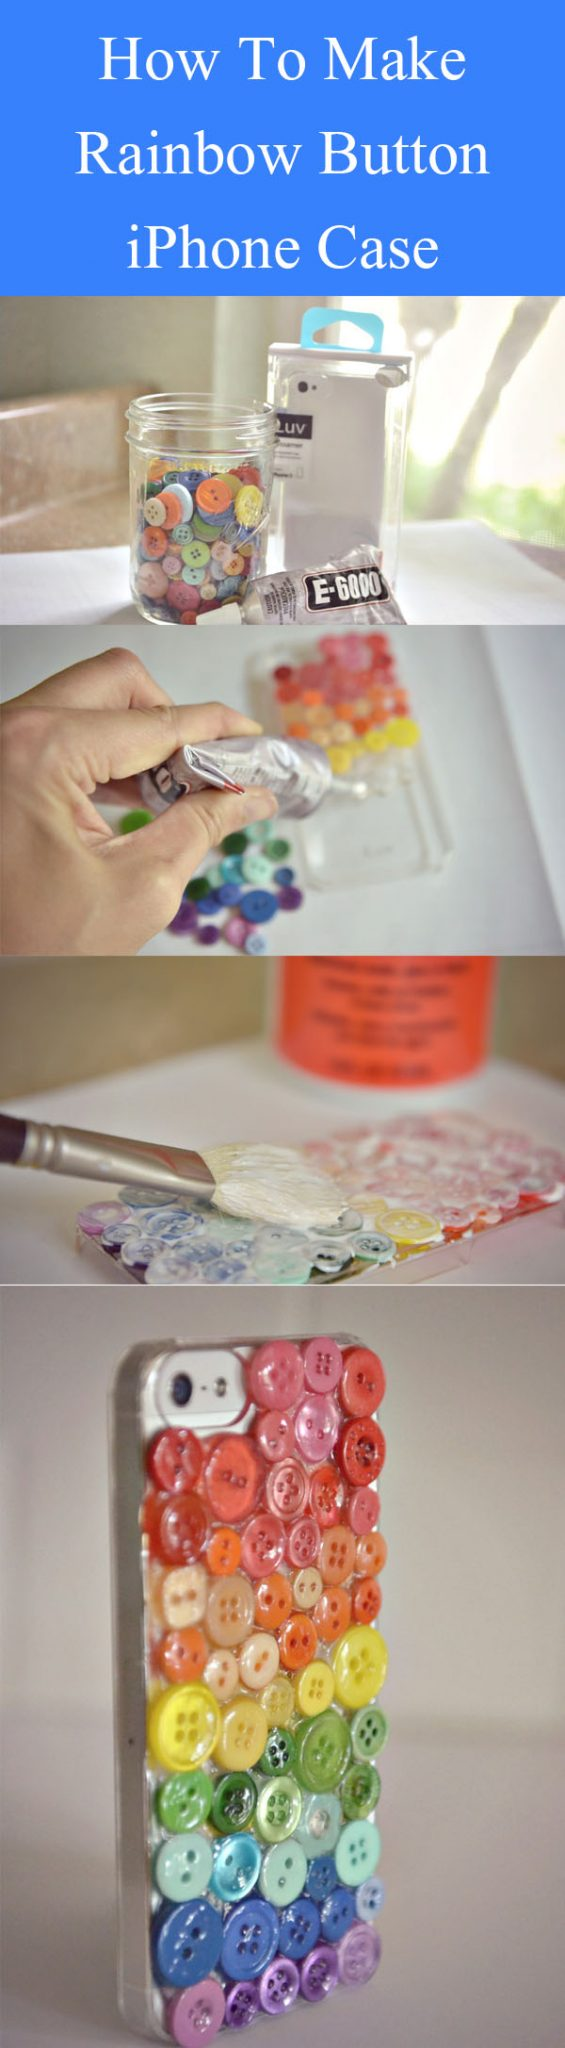 DIY Rainbow Button iPhone Case